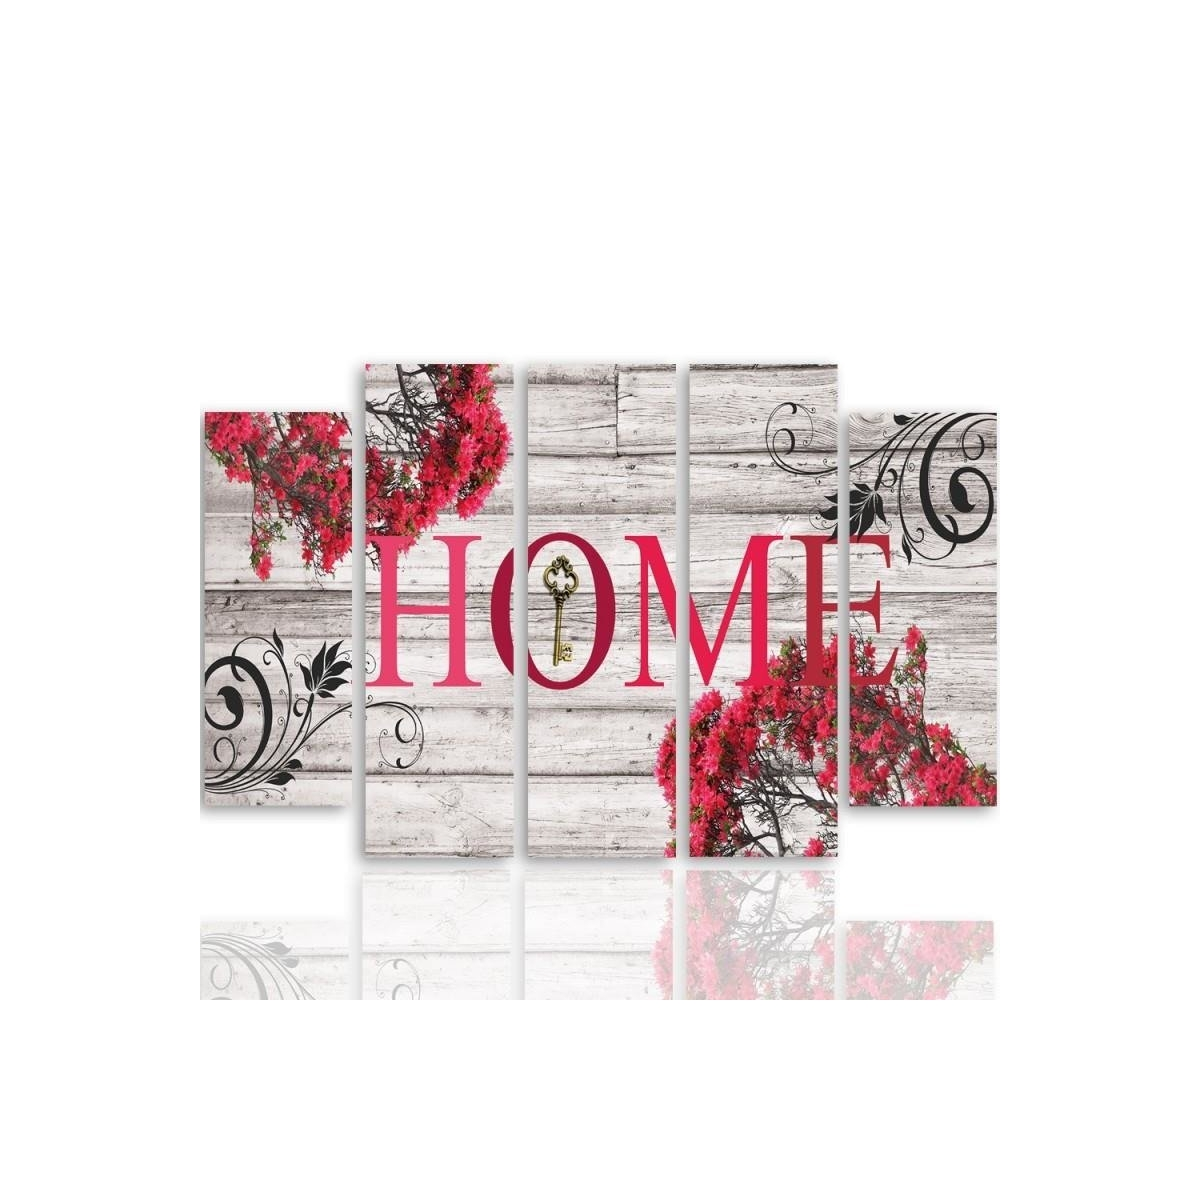 Five Part Picture On Canvas, Pentaptych, Type B, Inscription Home With Flowers 2100x150